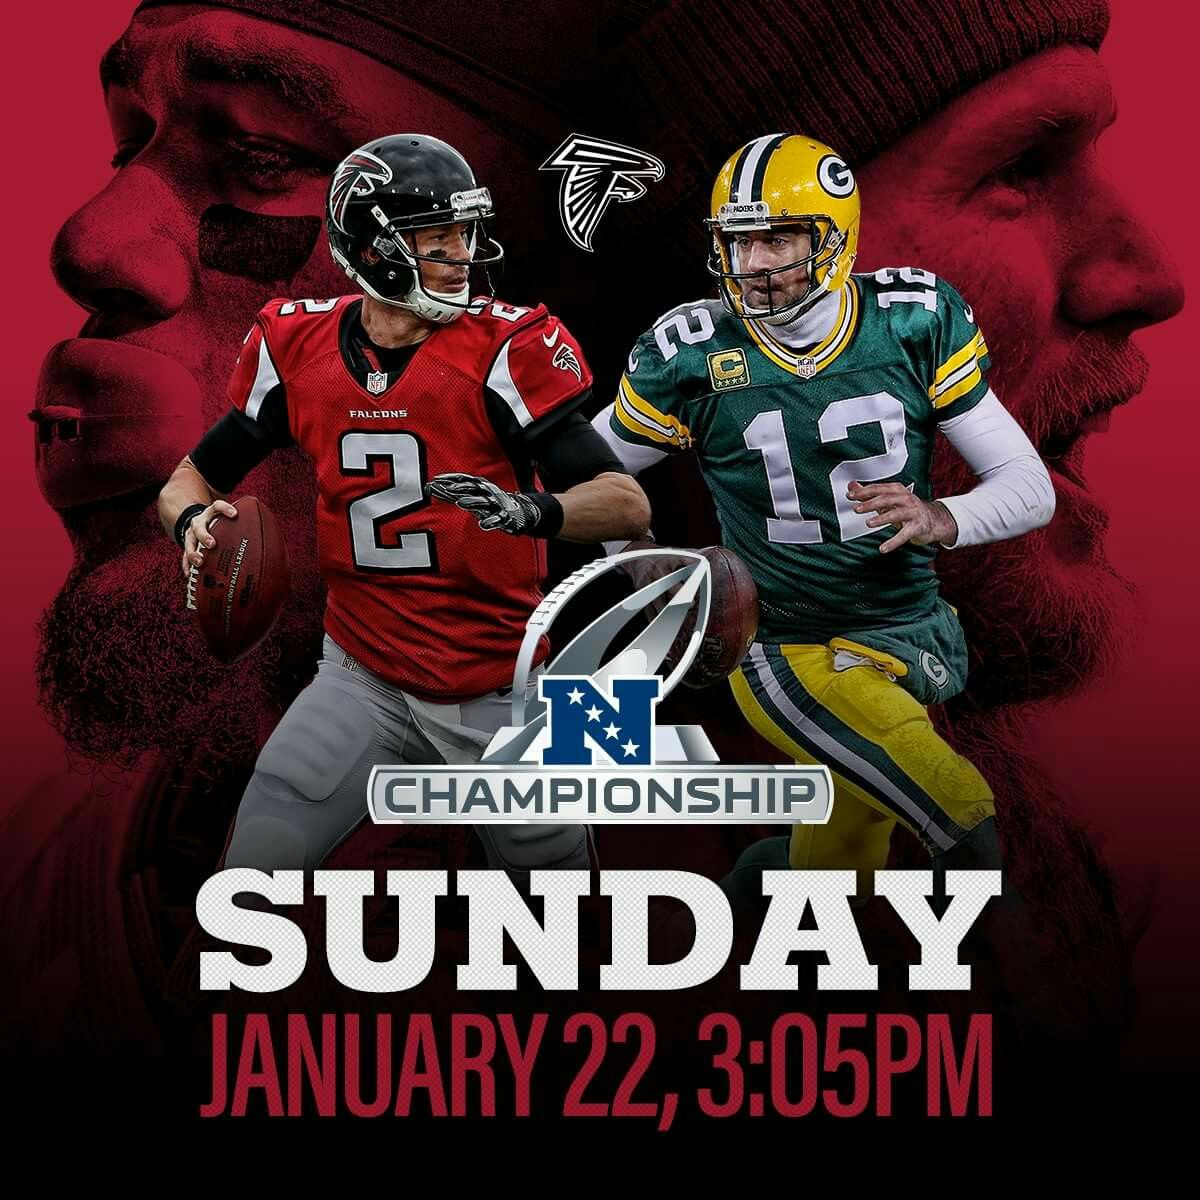 Go Falcons With Images Seattle Seahawks Logo Atlanta Falcons Nfc Championship Game